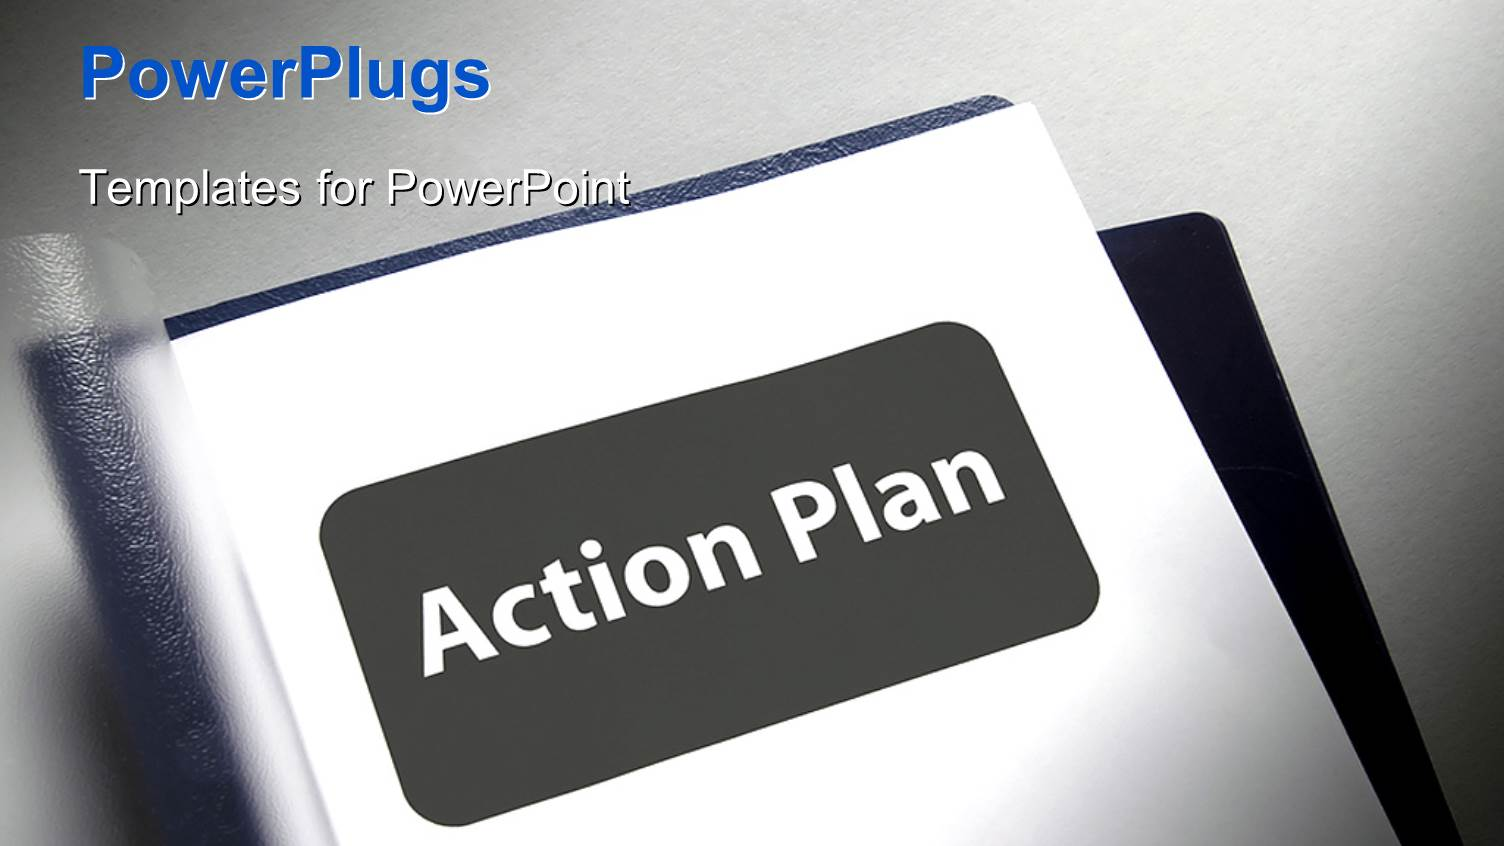 5000+ Future Plan PowerPoint Templates w/ Future Plan-Themed Backgrounds